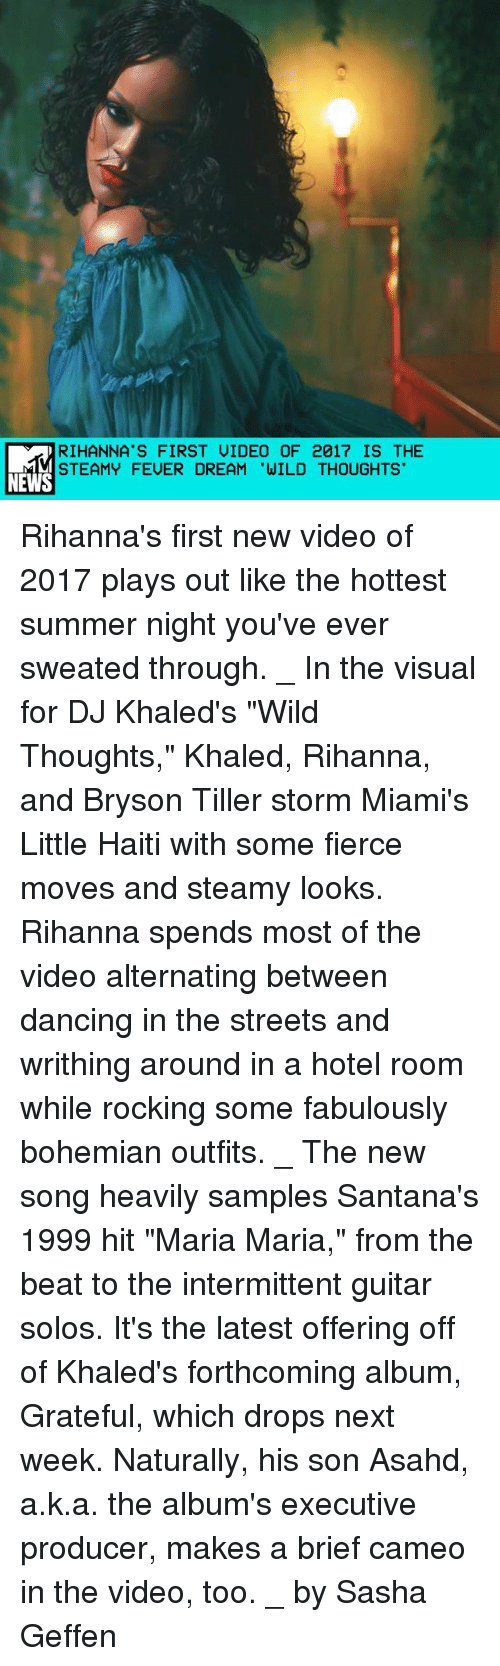 """Bryson Tiller: RIHANNA'S FIRST UIDEO OF 2017 IS THE  STEAMY FEUER DREAM 'WILD THOUGHTS  NEWS Rihanna's first new video of 2017 plays out like the hottest summer night you've ever sweated through. _ In the visual for DJ Khaled's """"Wild Thoughts,"""" Khaled, Rihanna, and Bryson Tiller storm Miami's Little Haiti with some fierce moves and steamy looks. Rihanna spends most of the video alternating between dancing in the streets and writhing around in a hotel room while rocking some fabulously bohemian outfits. _ The new song heavily samples Santana's 1999 hit """"Maria Maria,"""" from the beat to the intermittent guitar solos. It's the latest offering off of Khaled's forthcoming album, Grateful, which drops next week. Naturally, his son Asahd, a.k.a. the album's executive producer, makes a brief cameo in the video, too. _ by Sasha Geffen"""